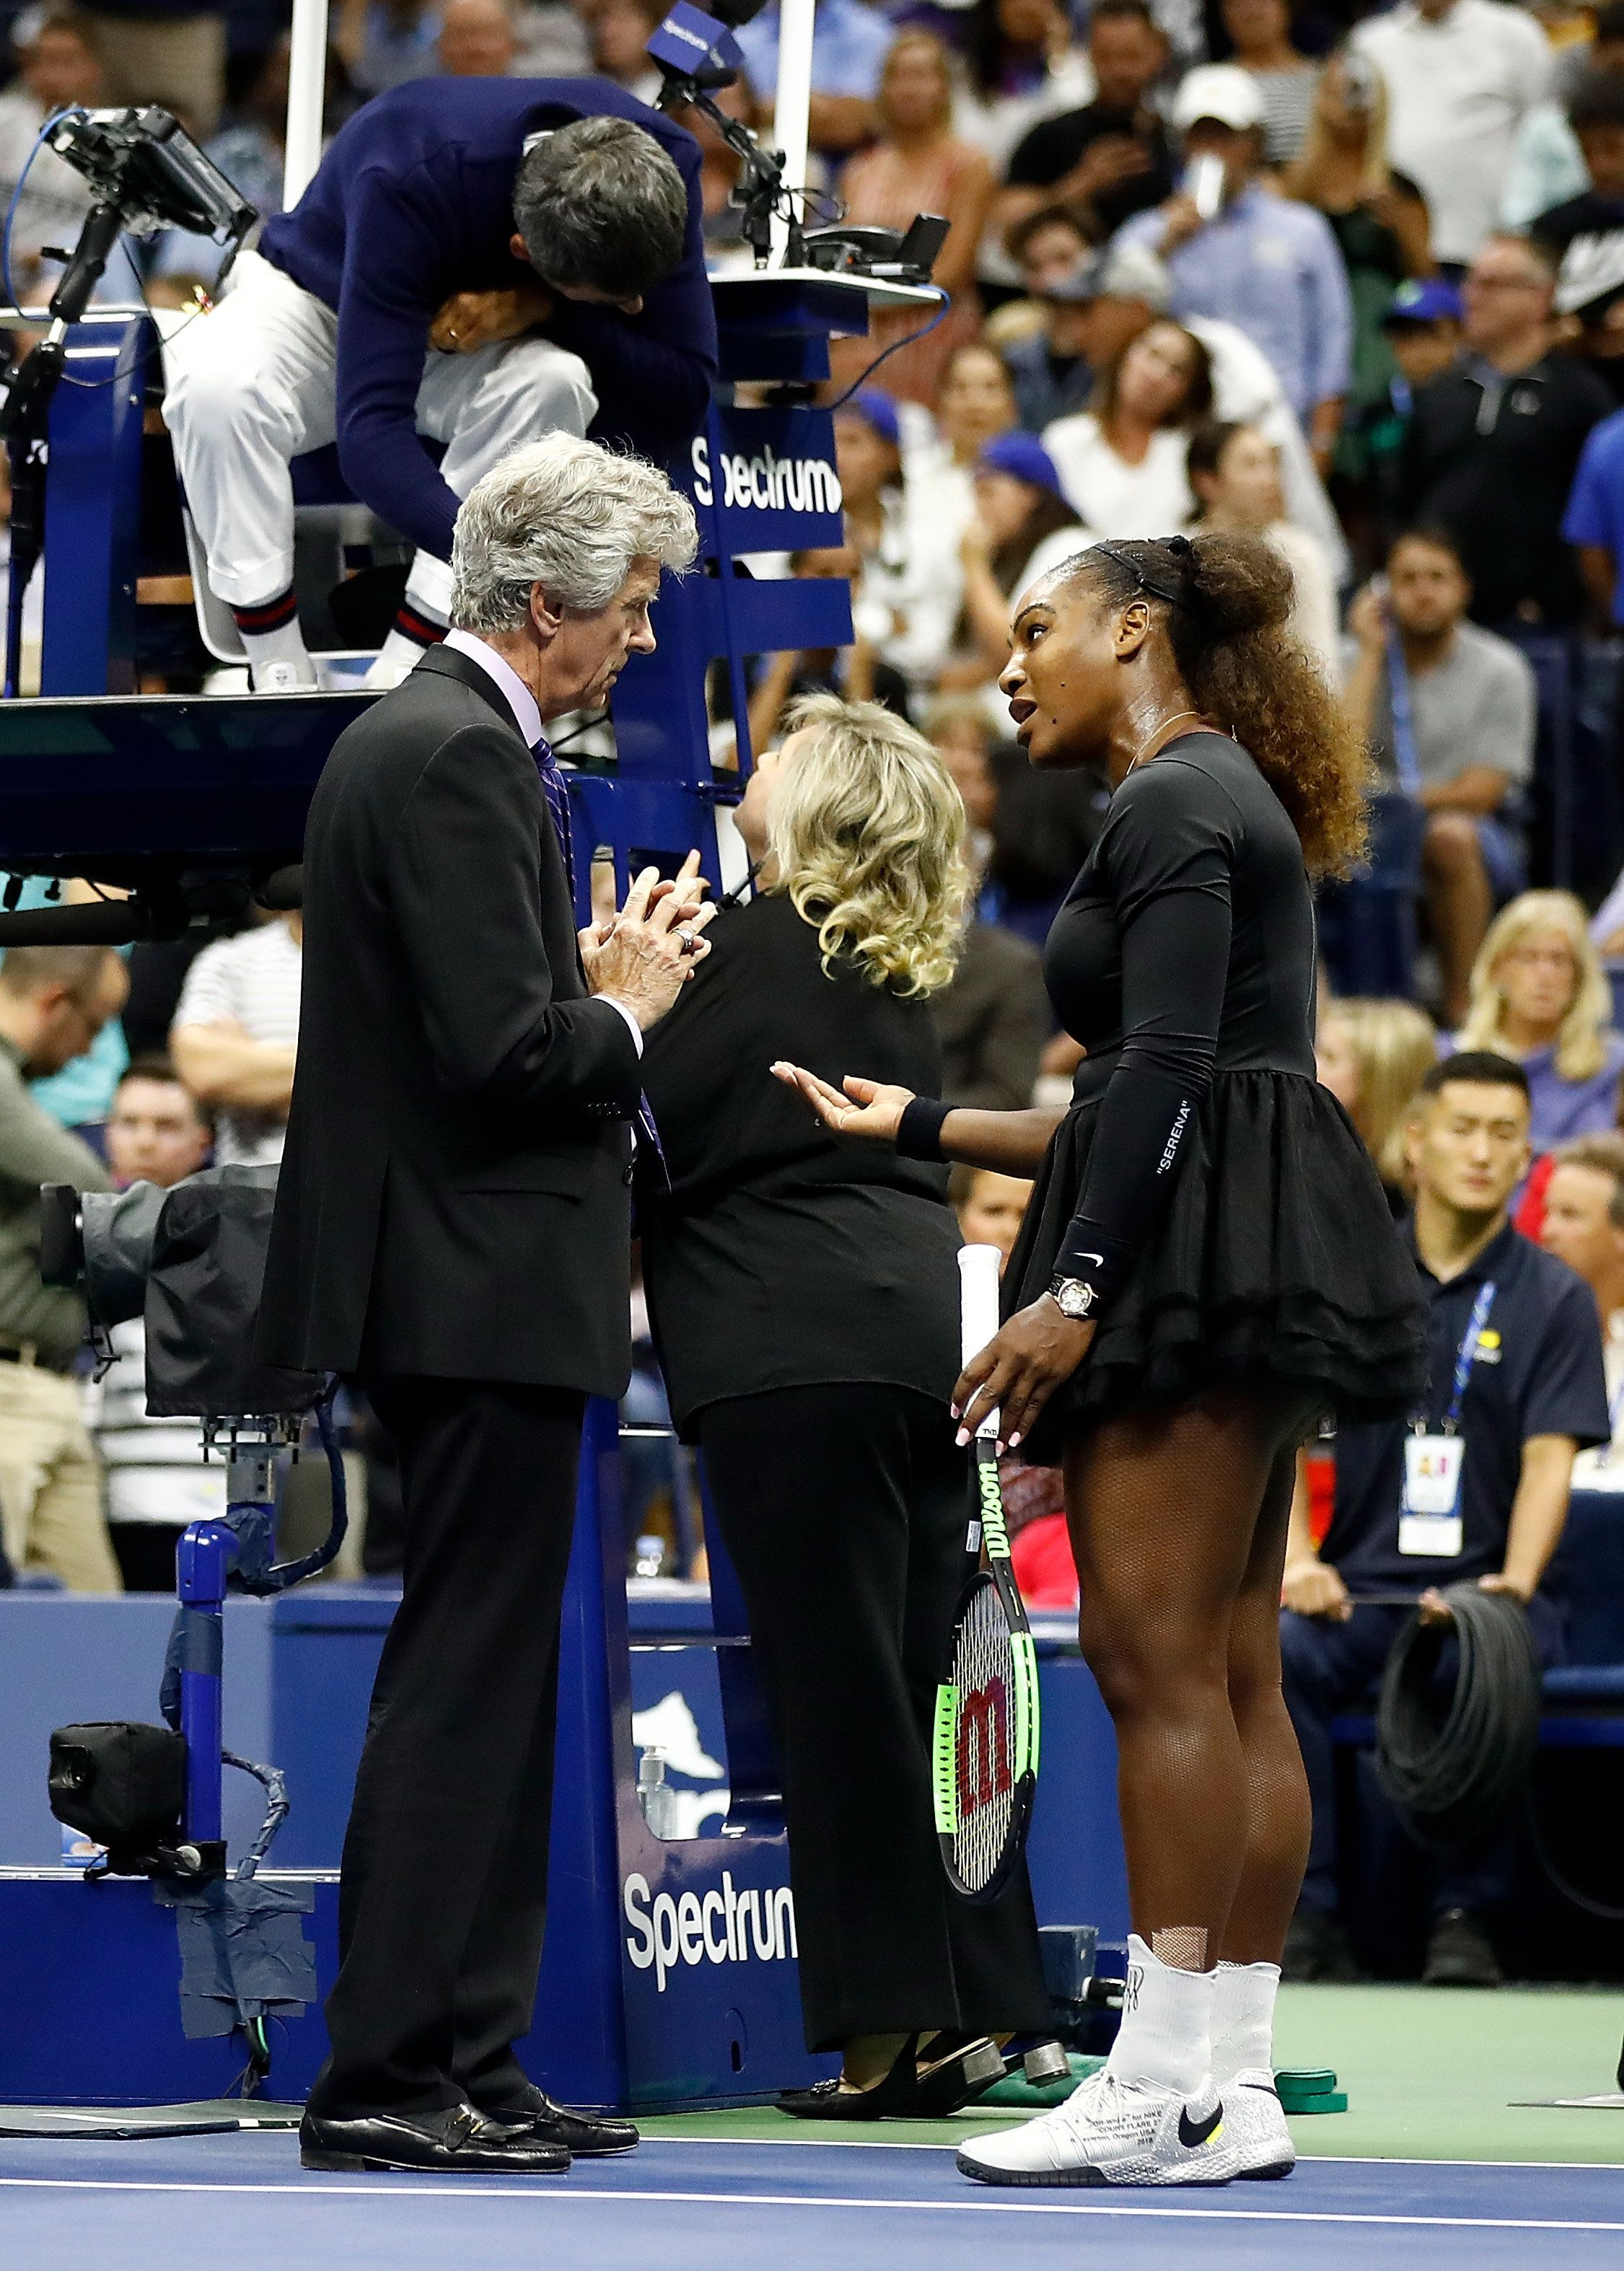 Women React To Serena Williams Sexism Row: 'This Happens To Black Women In The Workplace Every